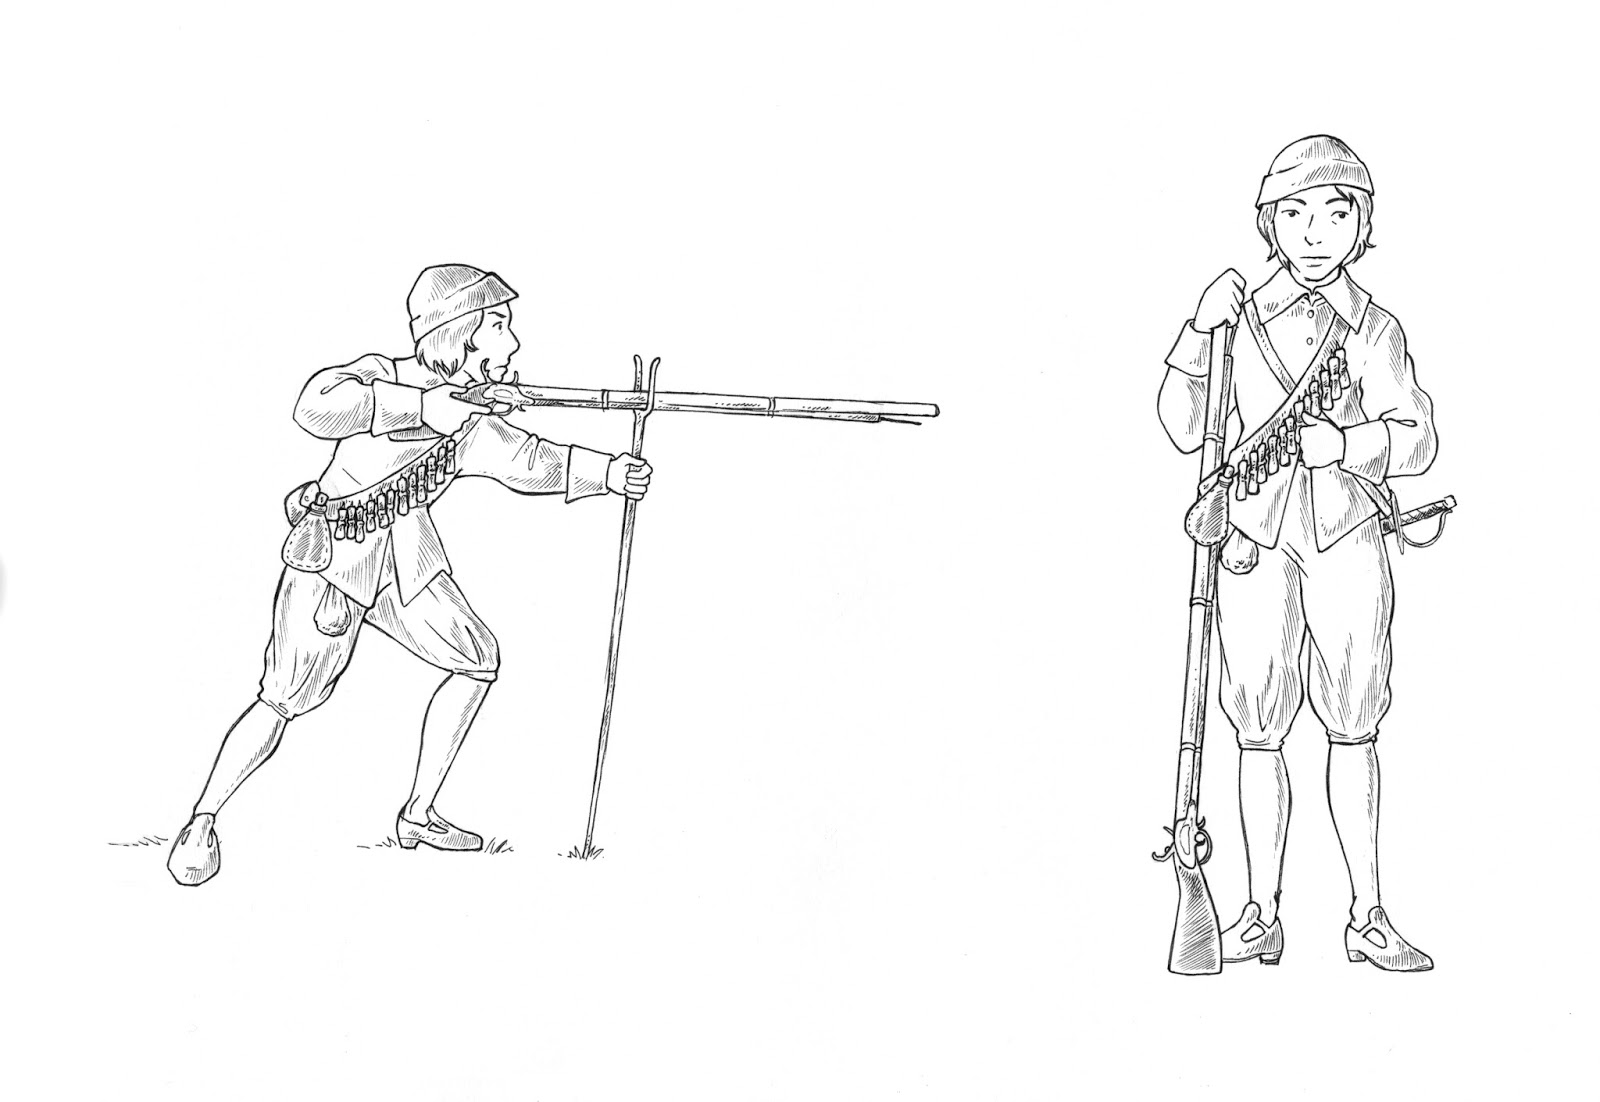 sarah fogg illustration civil war soldiers